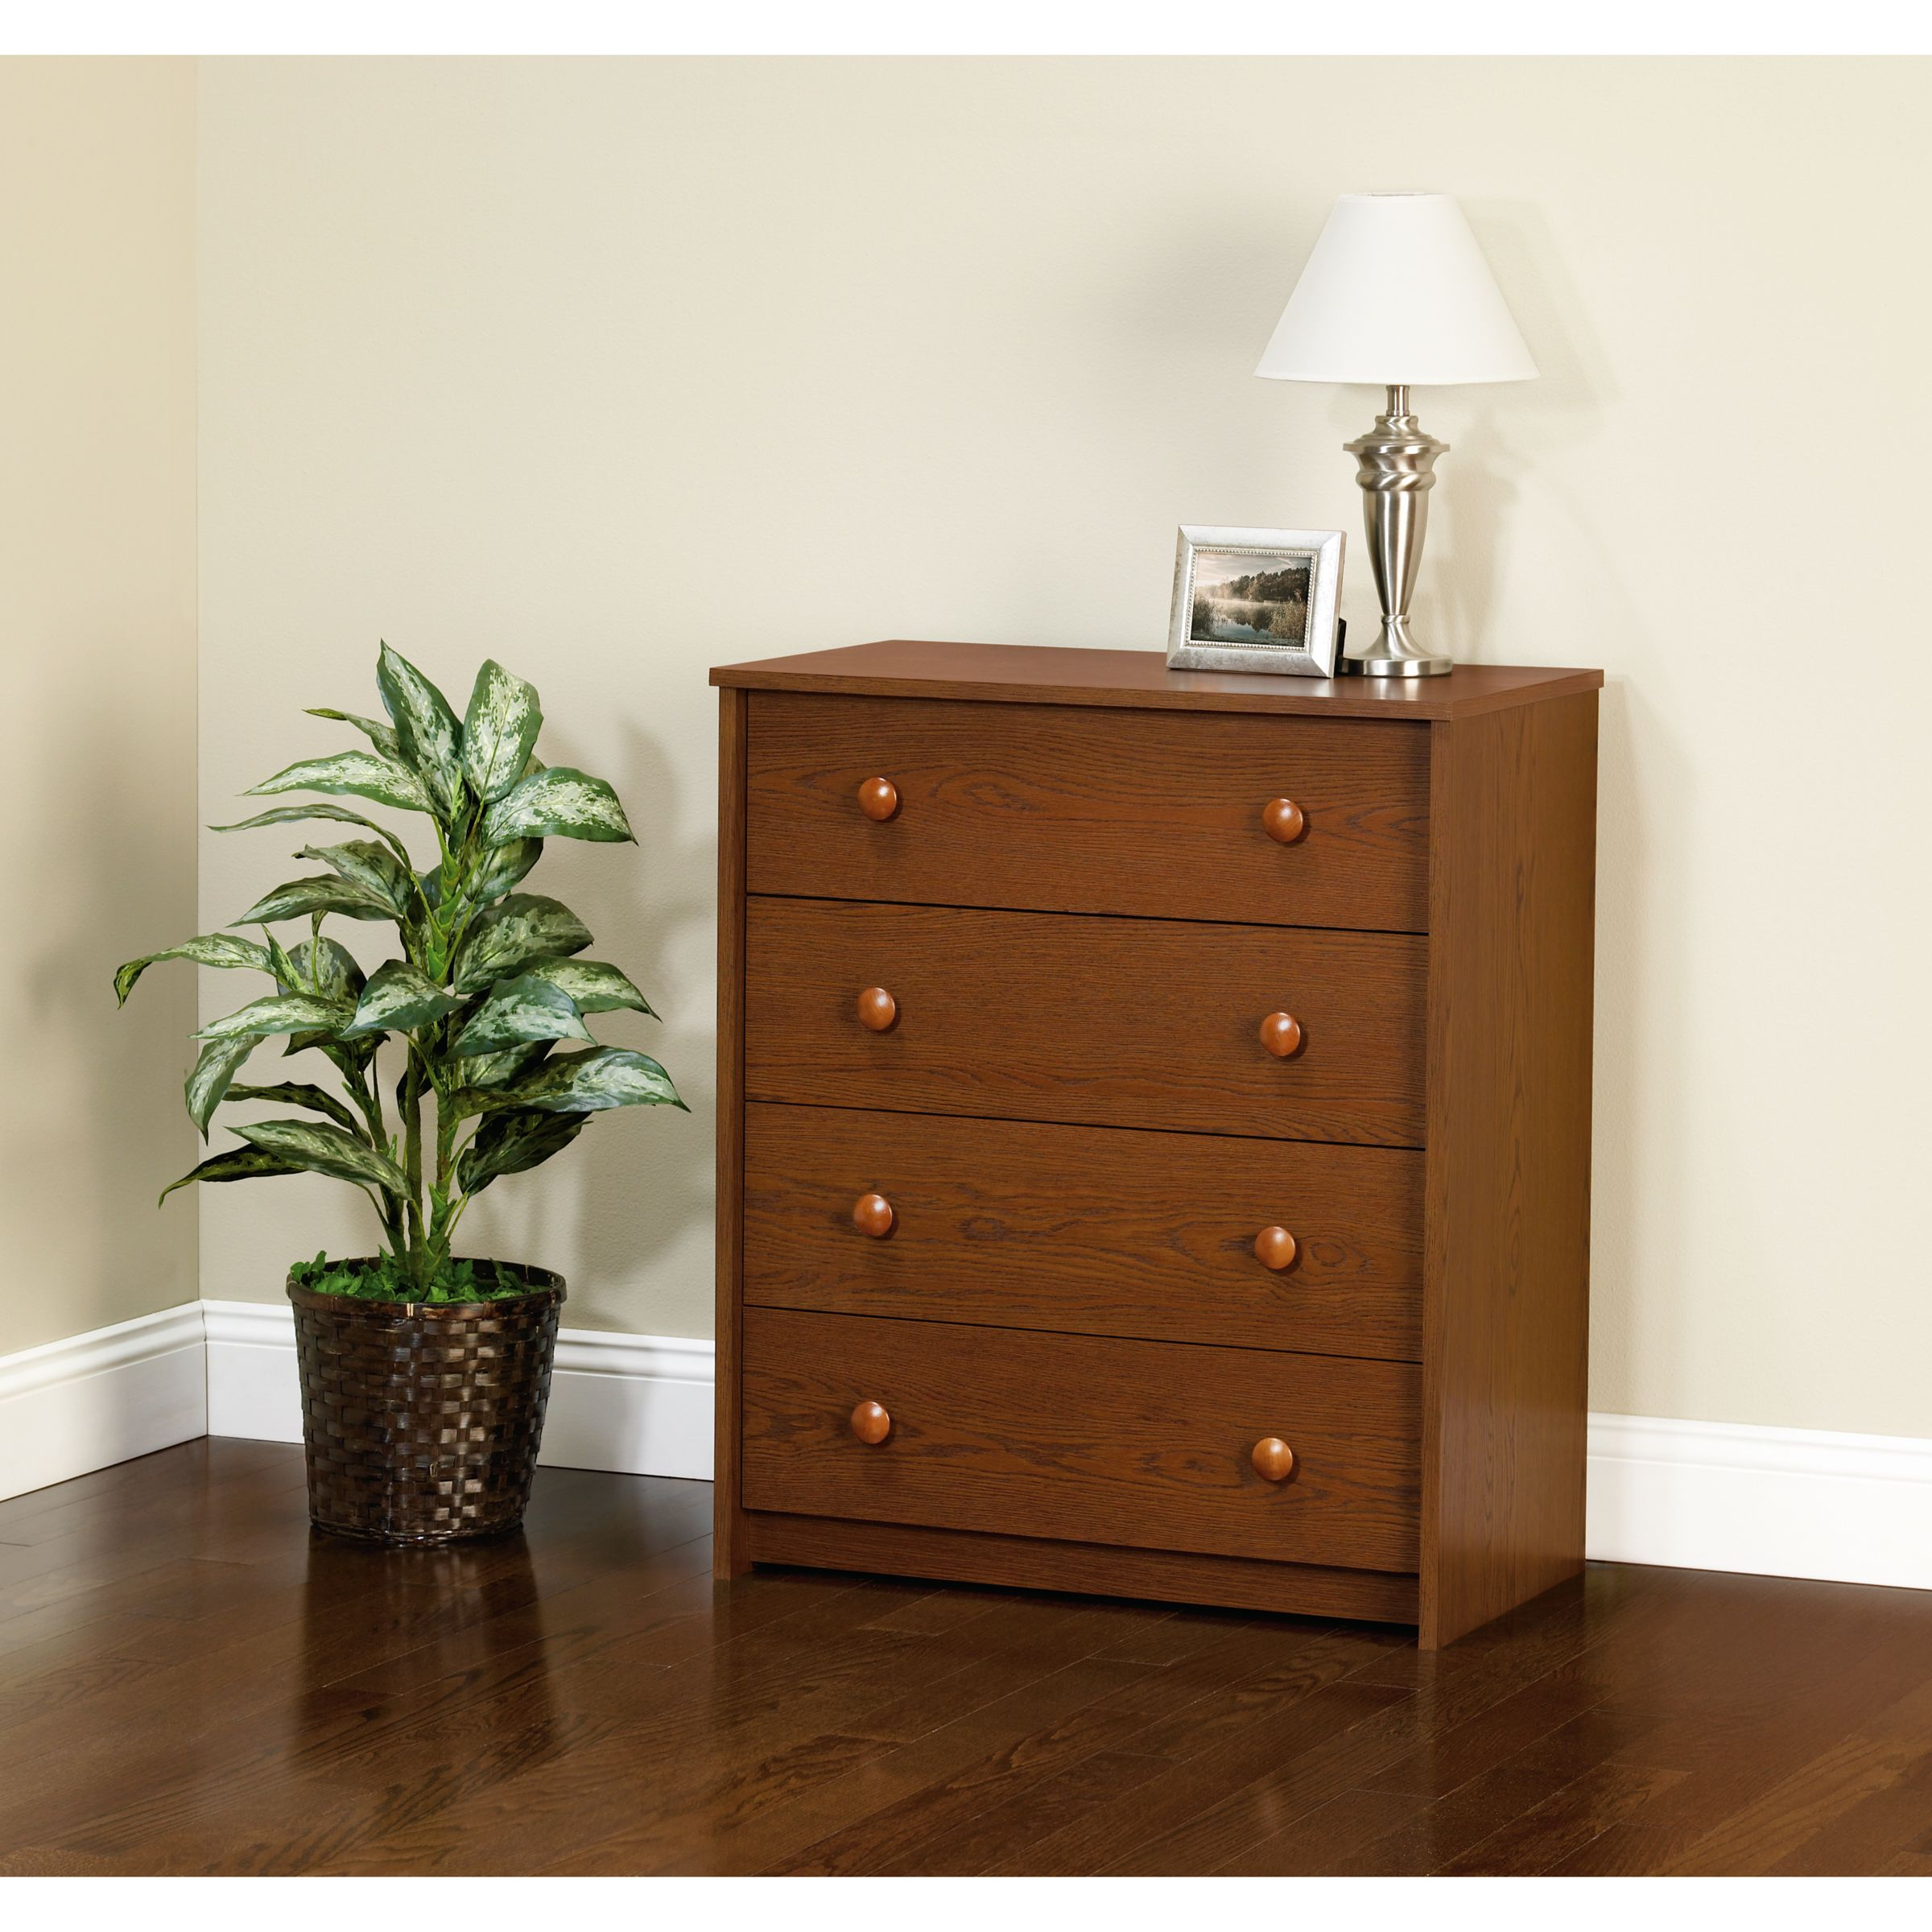 Belmont 4 Drawer Chest - Walnut